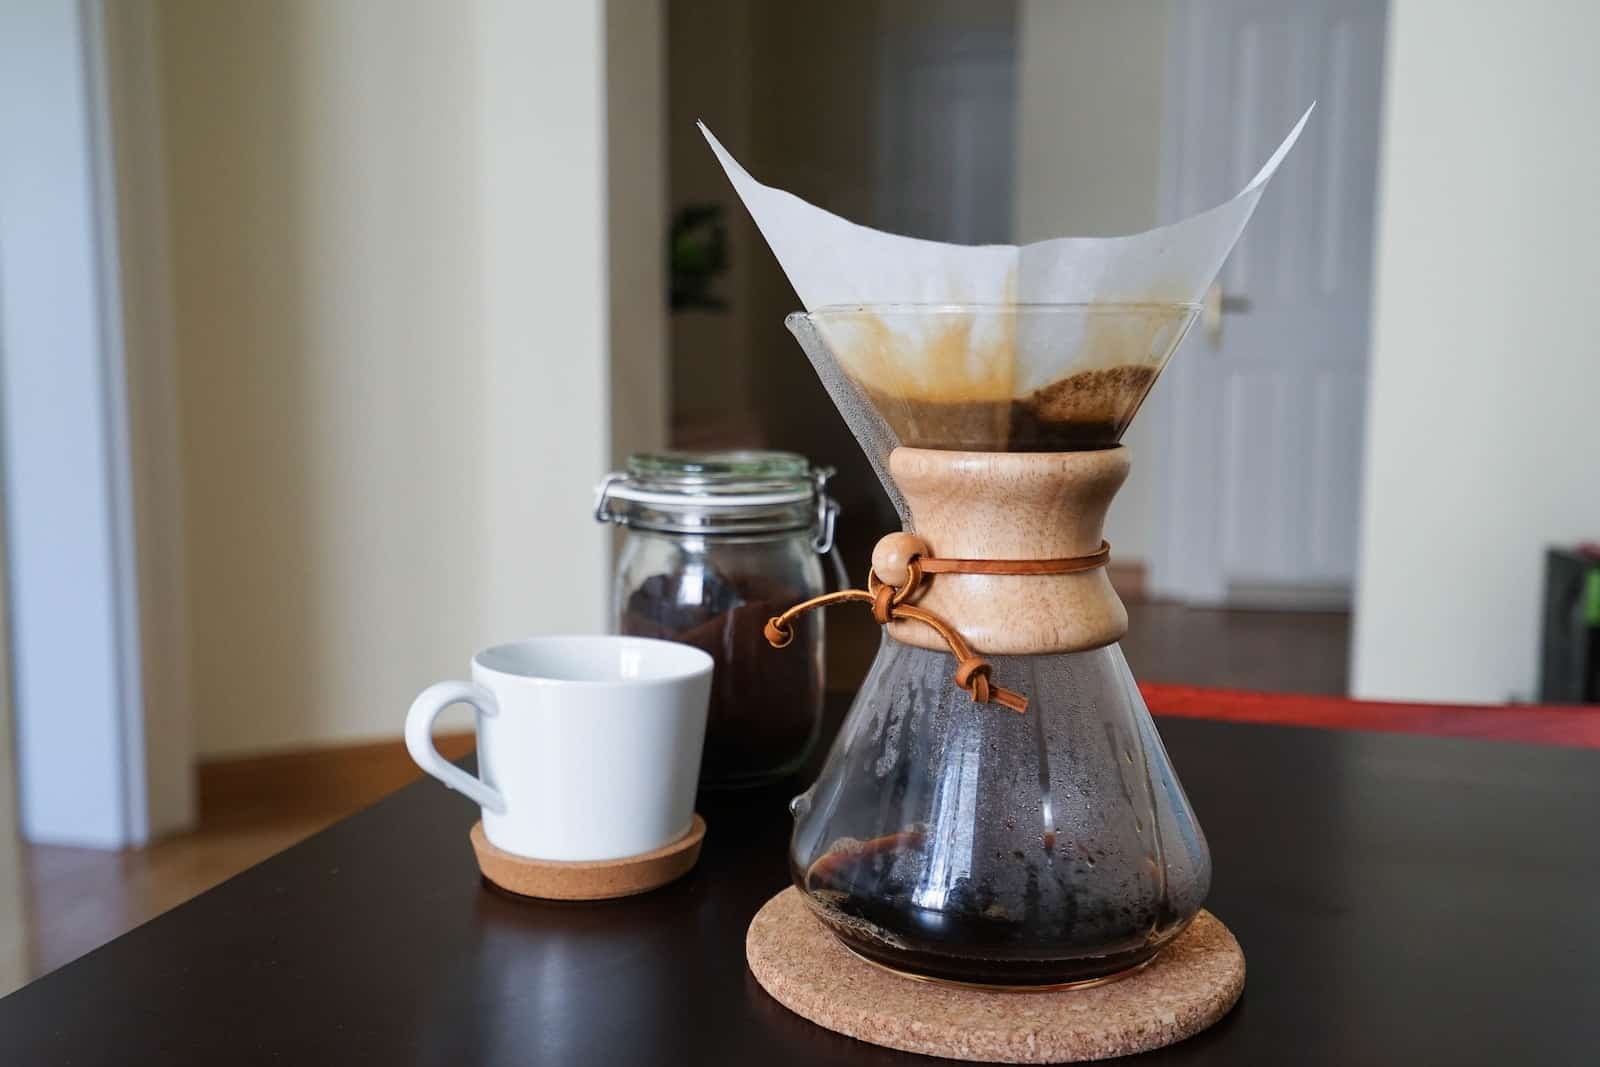 coffee in a chemex